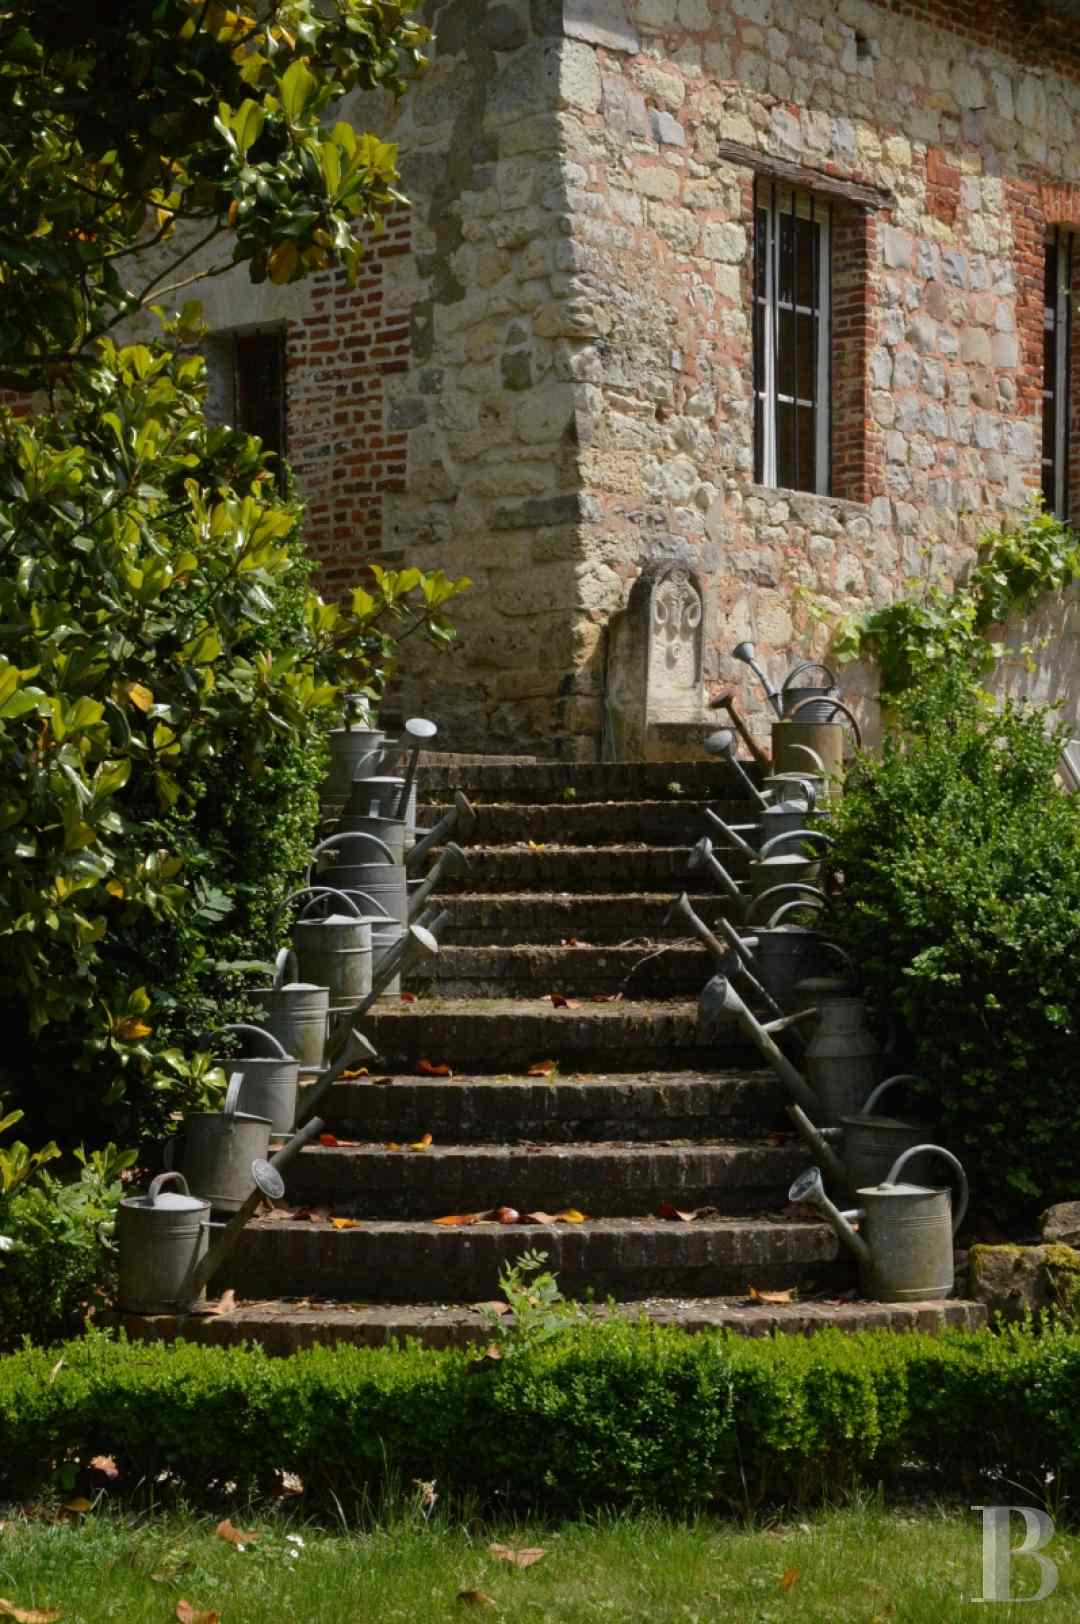 chateaux for sale France picardy castles chateaux - 3 zoom